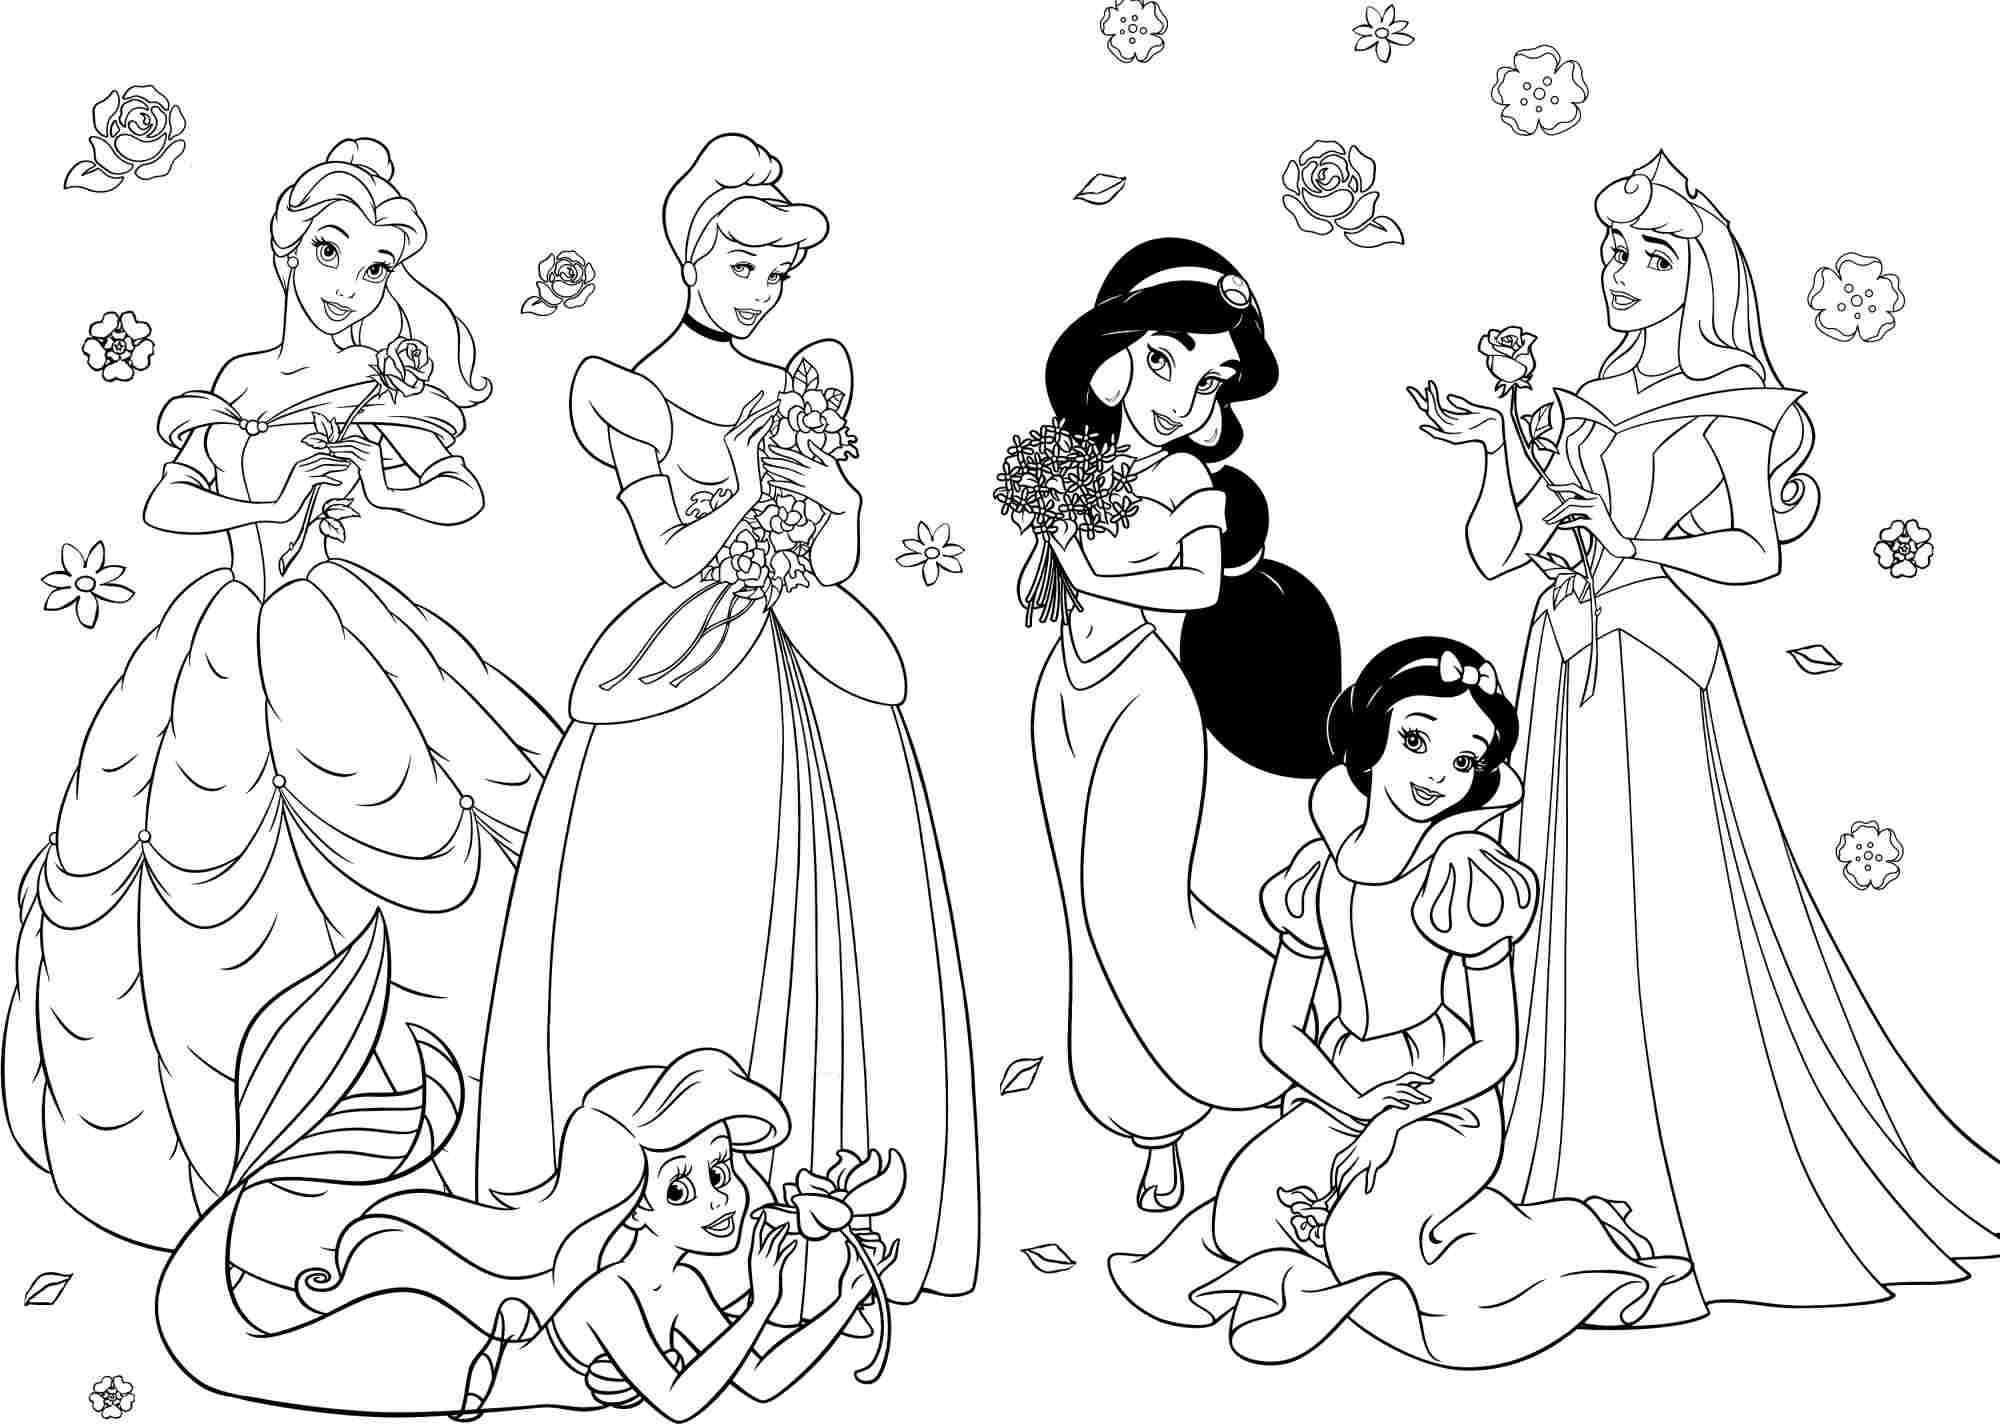 Disney Princess Coloring Pages For Girls Free Large Images Captivating Printable Disney Princess Colors Disney Princess Coloring Pages Rapunzel Coloring Pages